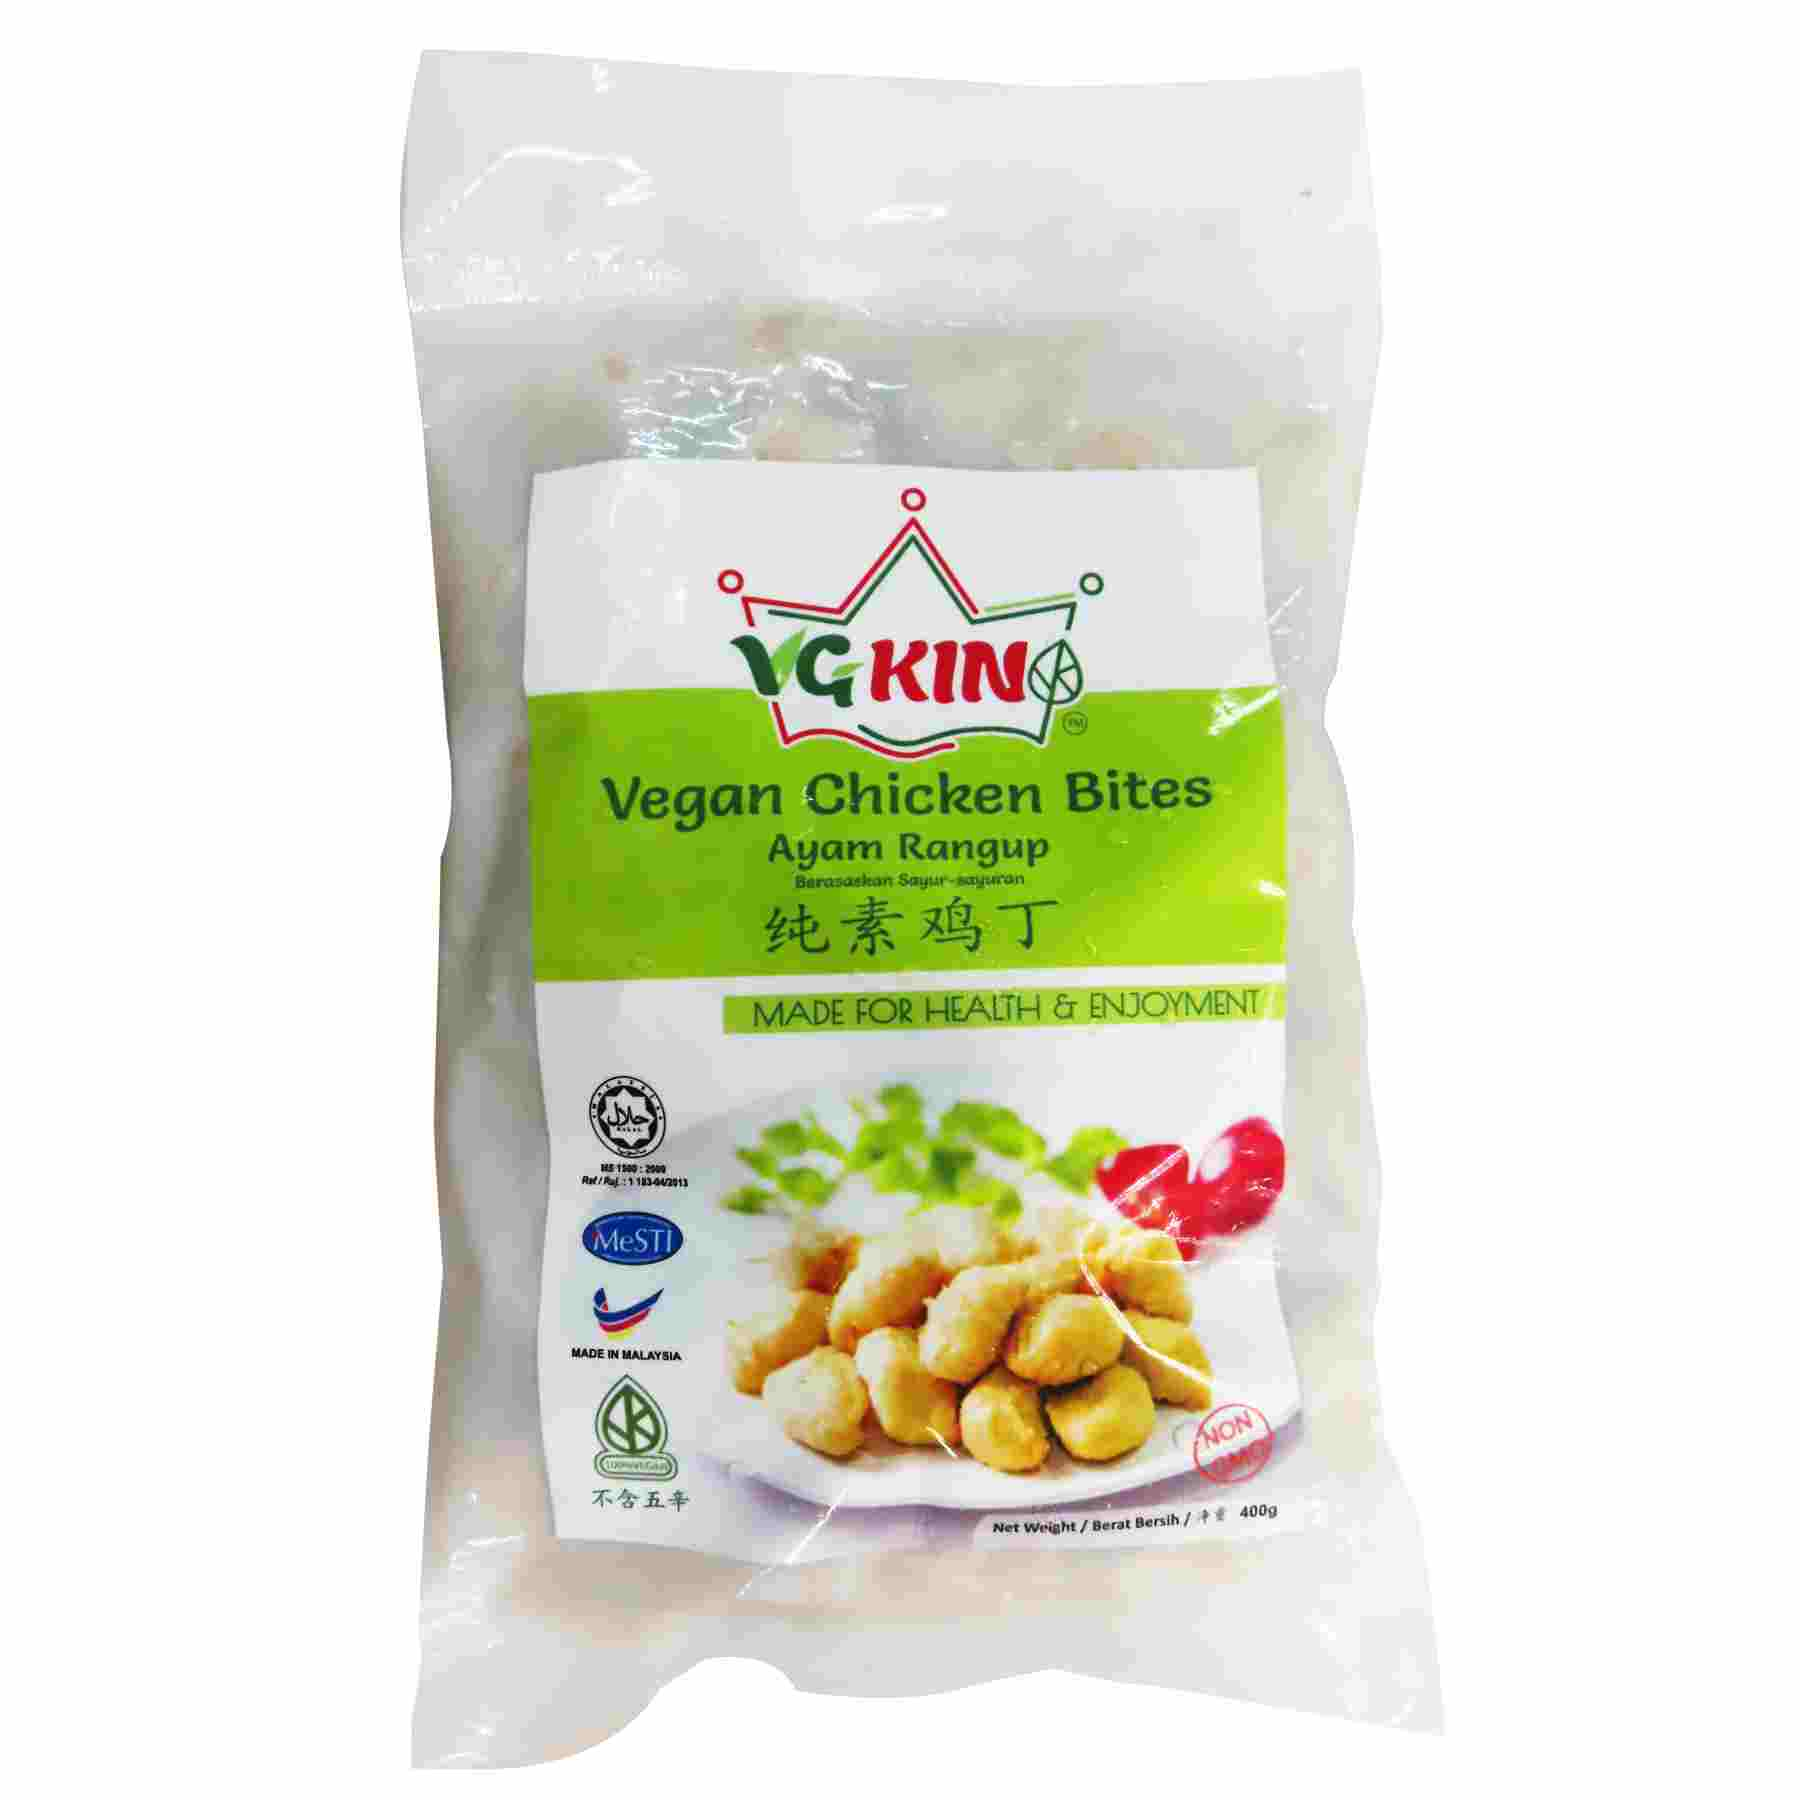 Image VGKing Vegan Chicken Bites 纯素鸡丁 400grams